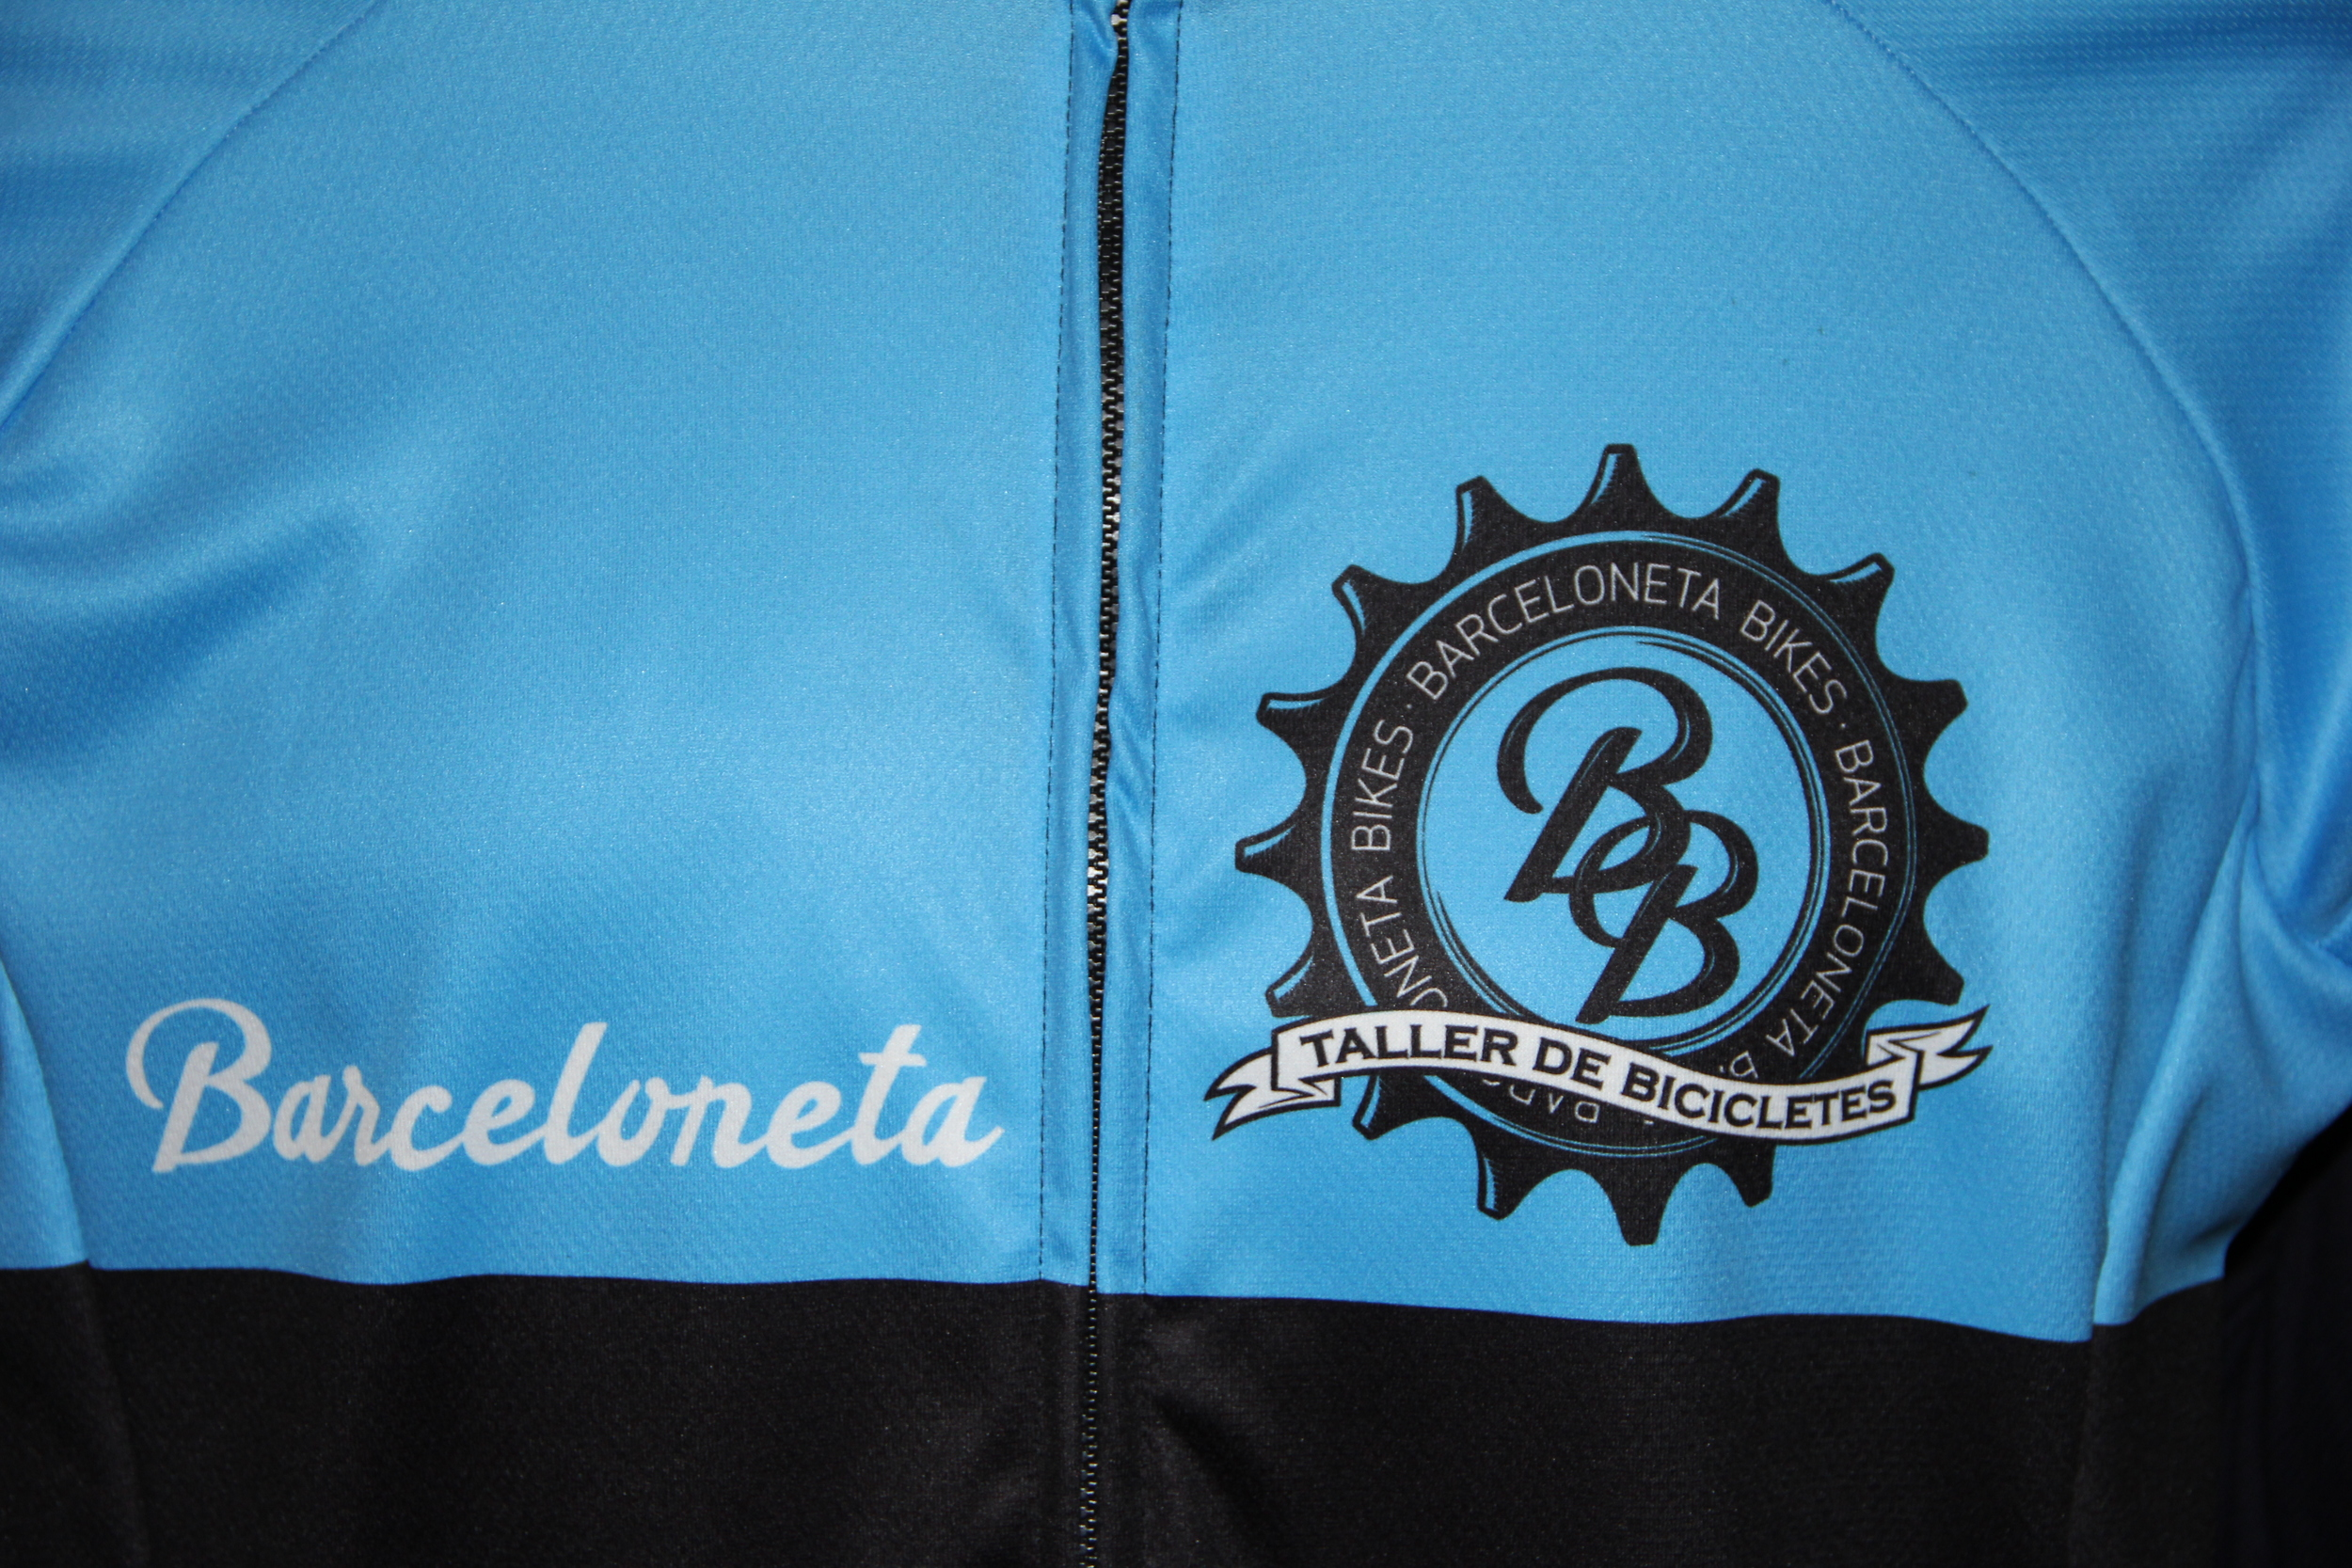 Barceloneta Bikes'  Club jersey: cool!